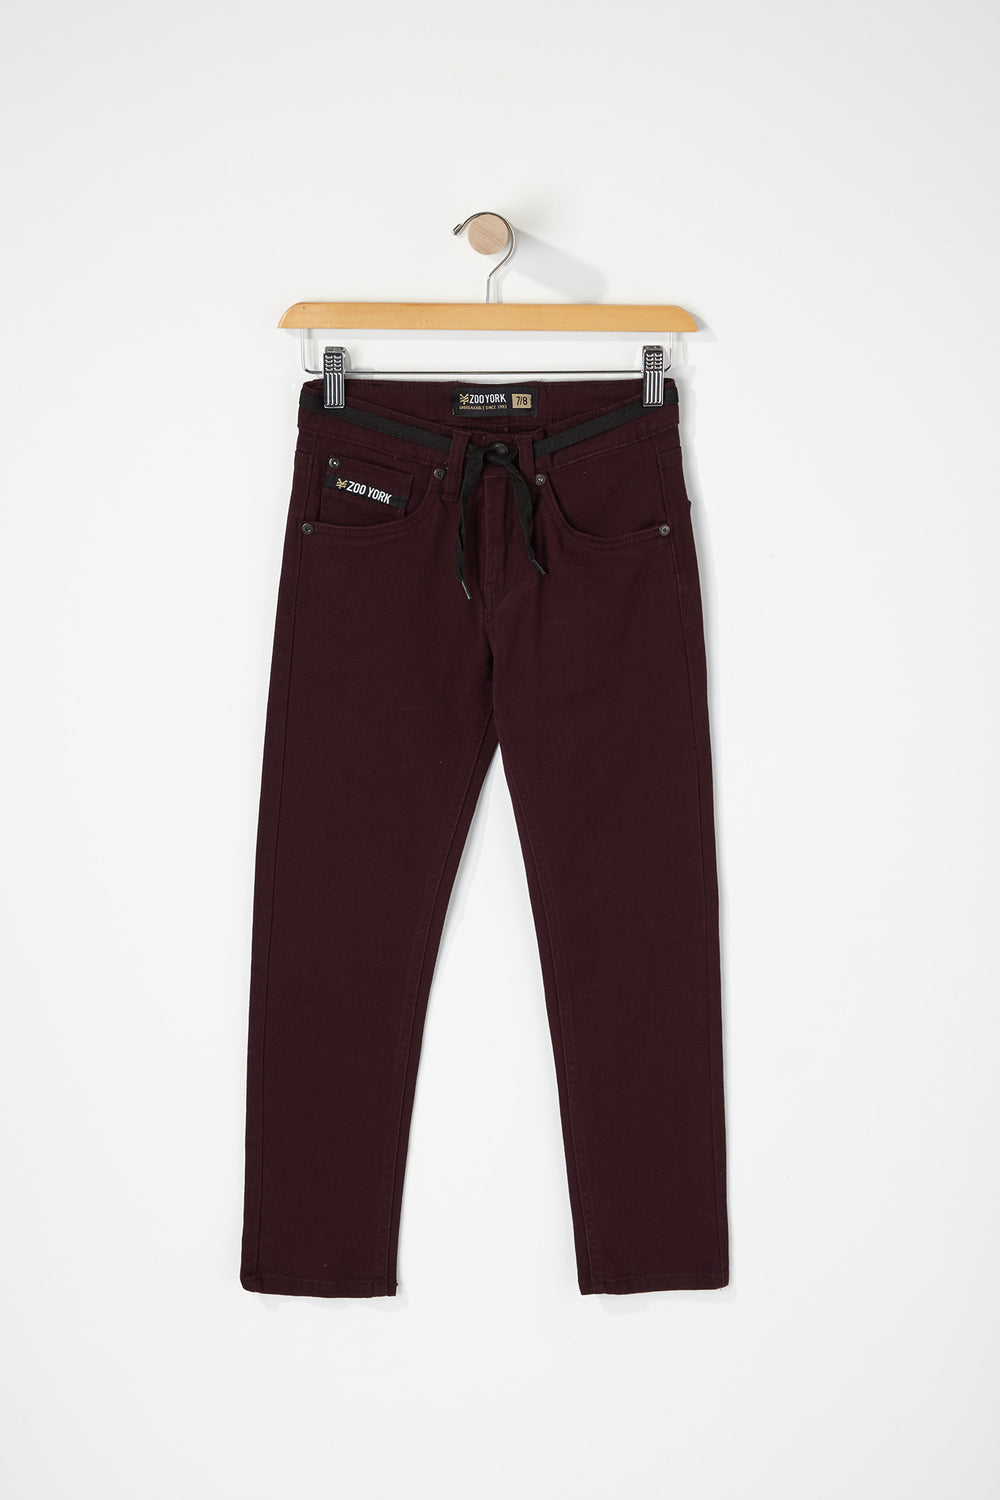 Zoo York Youth Stretch Skinny Jeans Burgundy